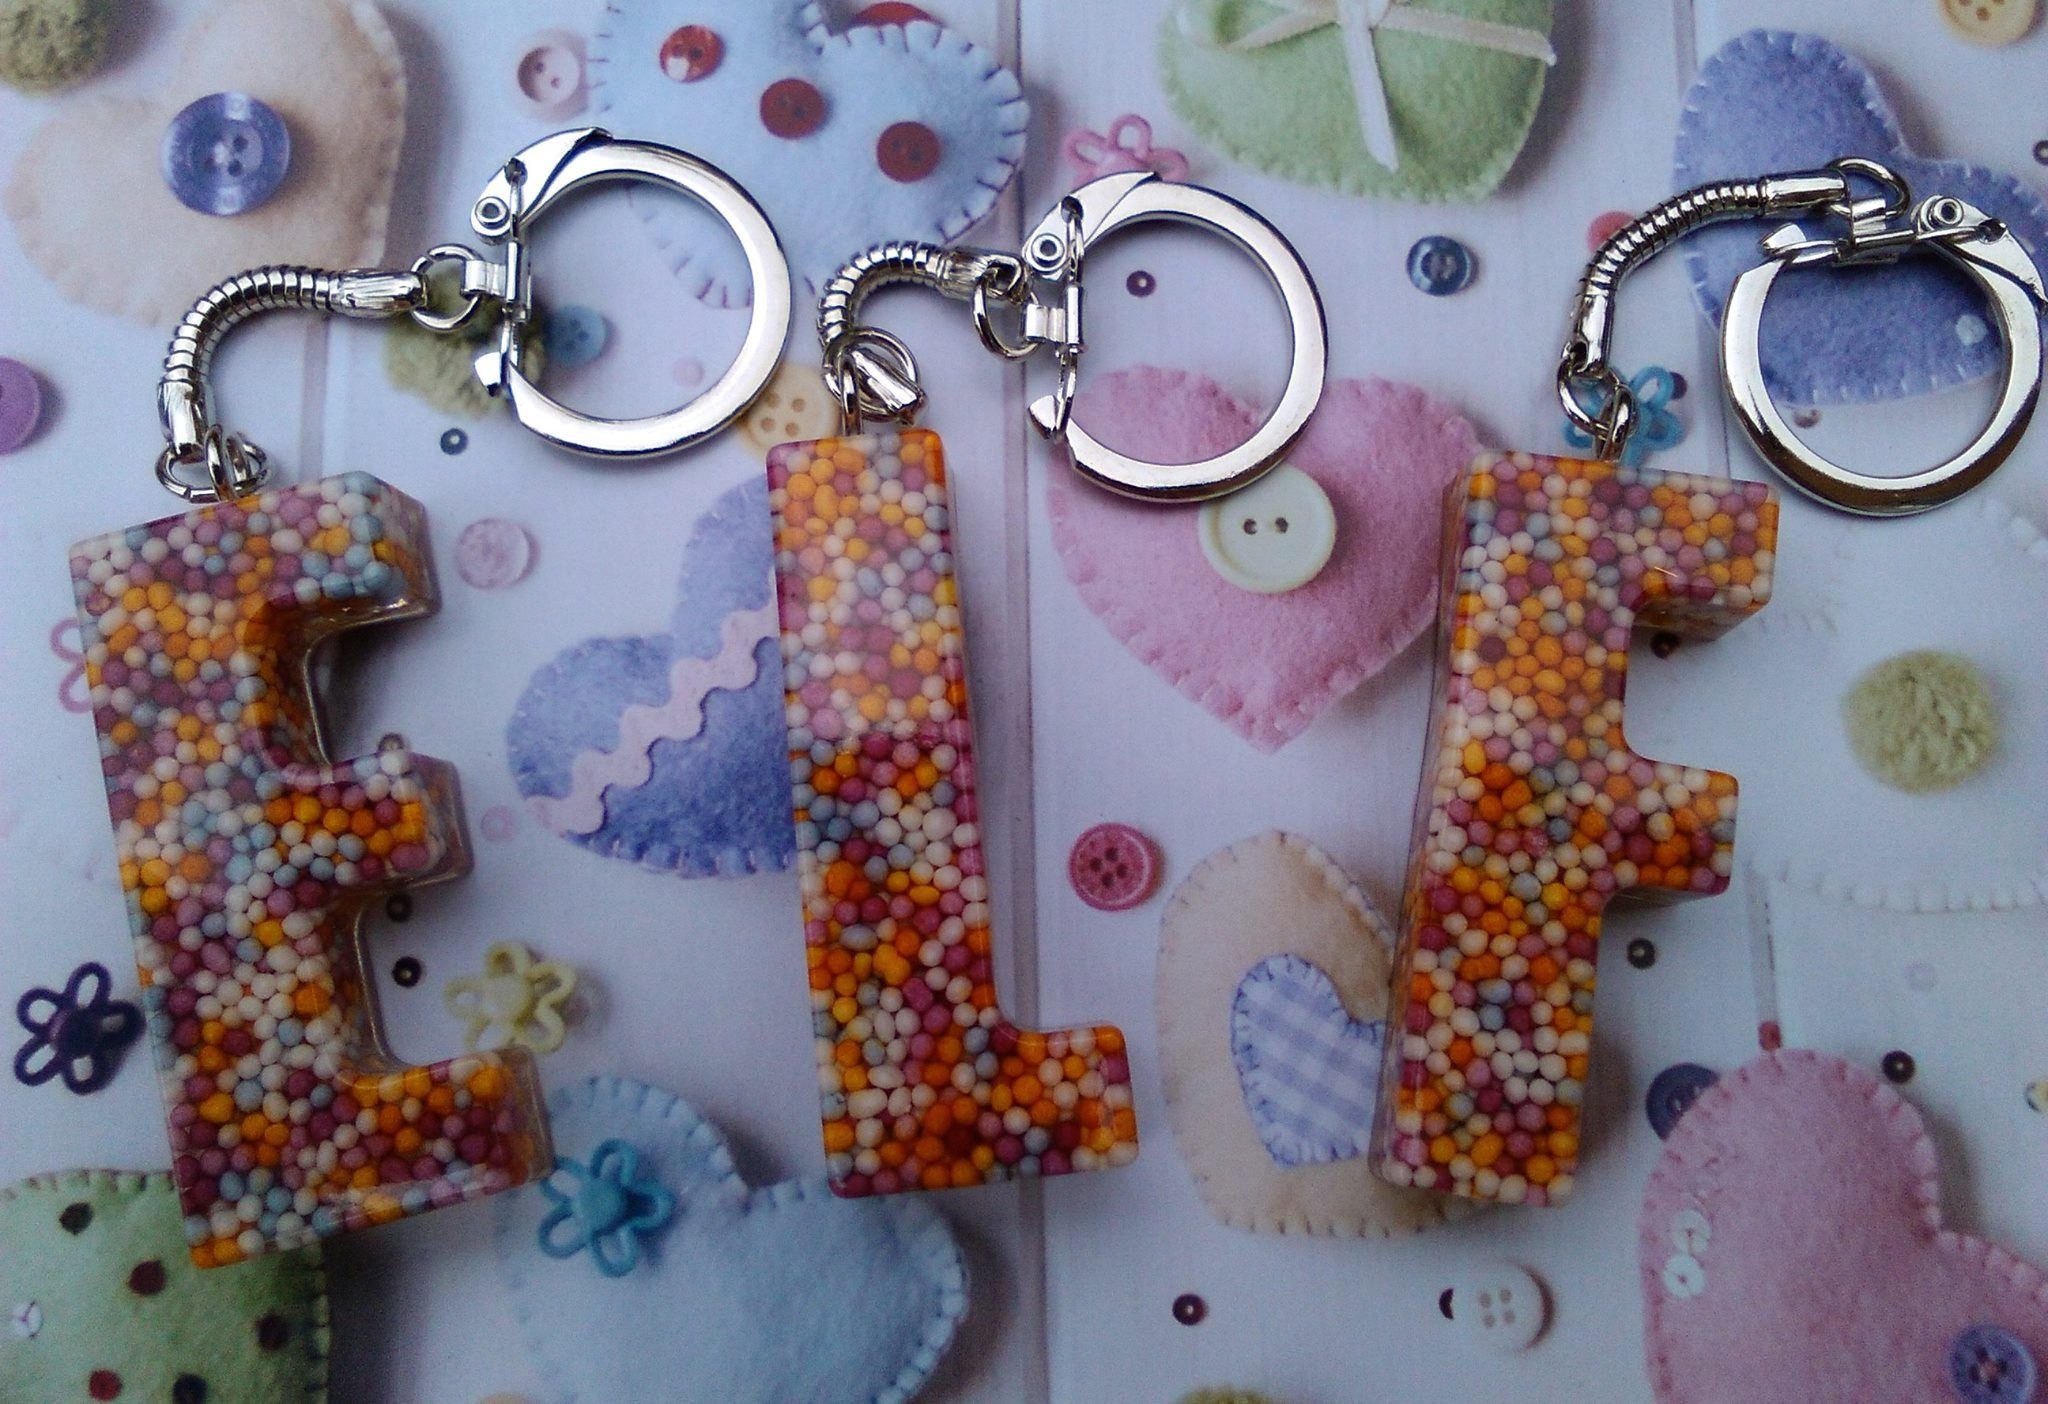 Just made a few custom order keyrings for a fellow crafters children, hope they like them